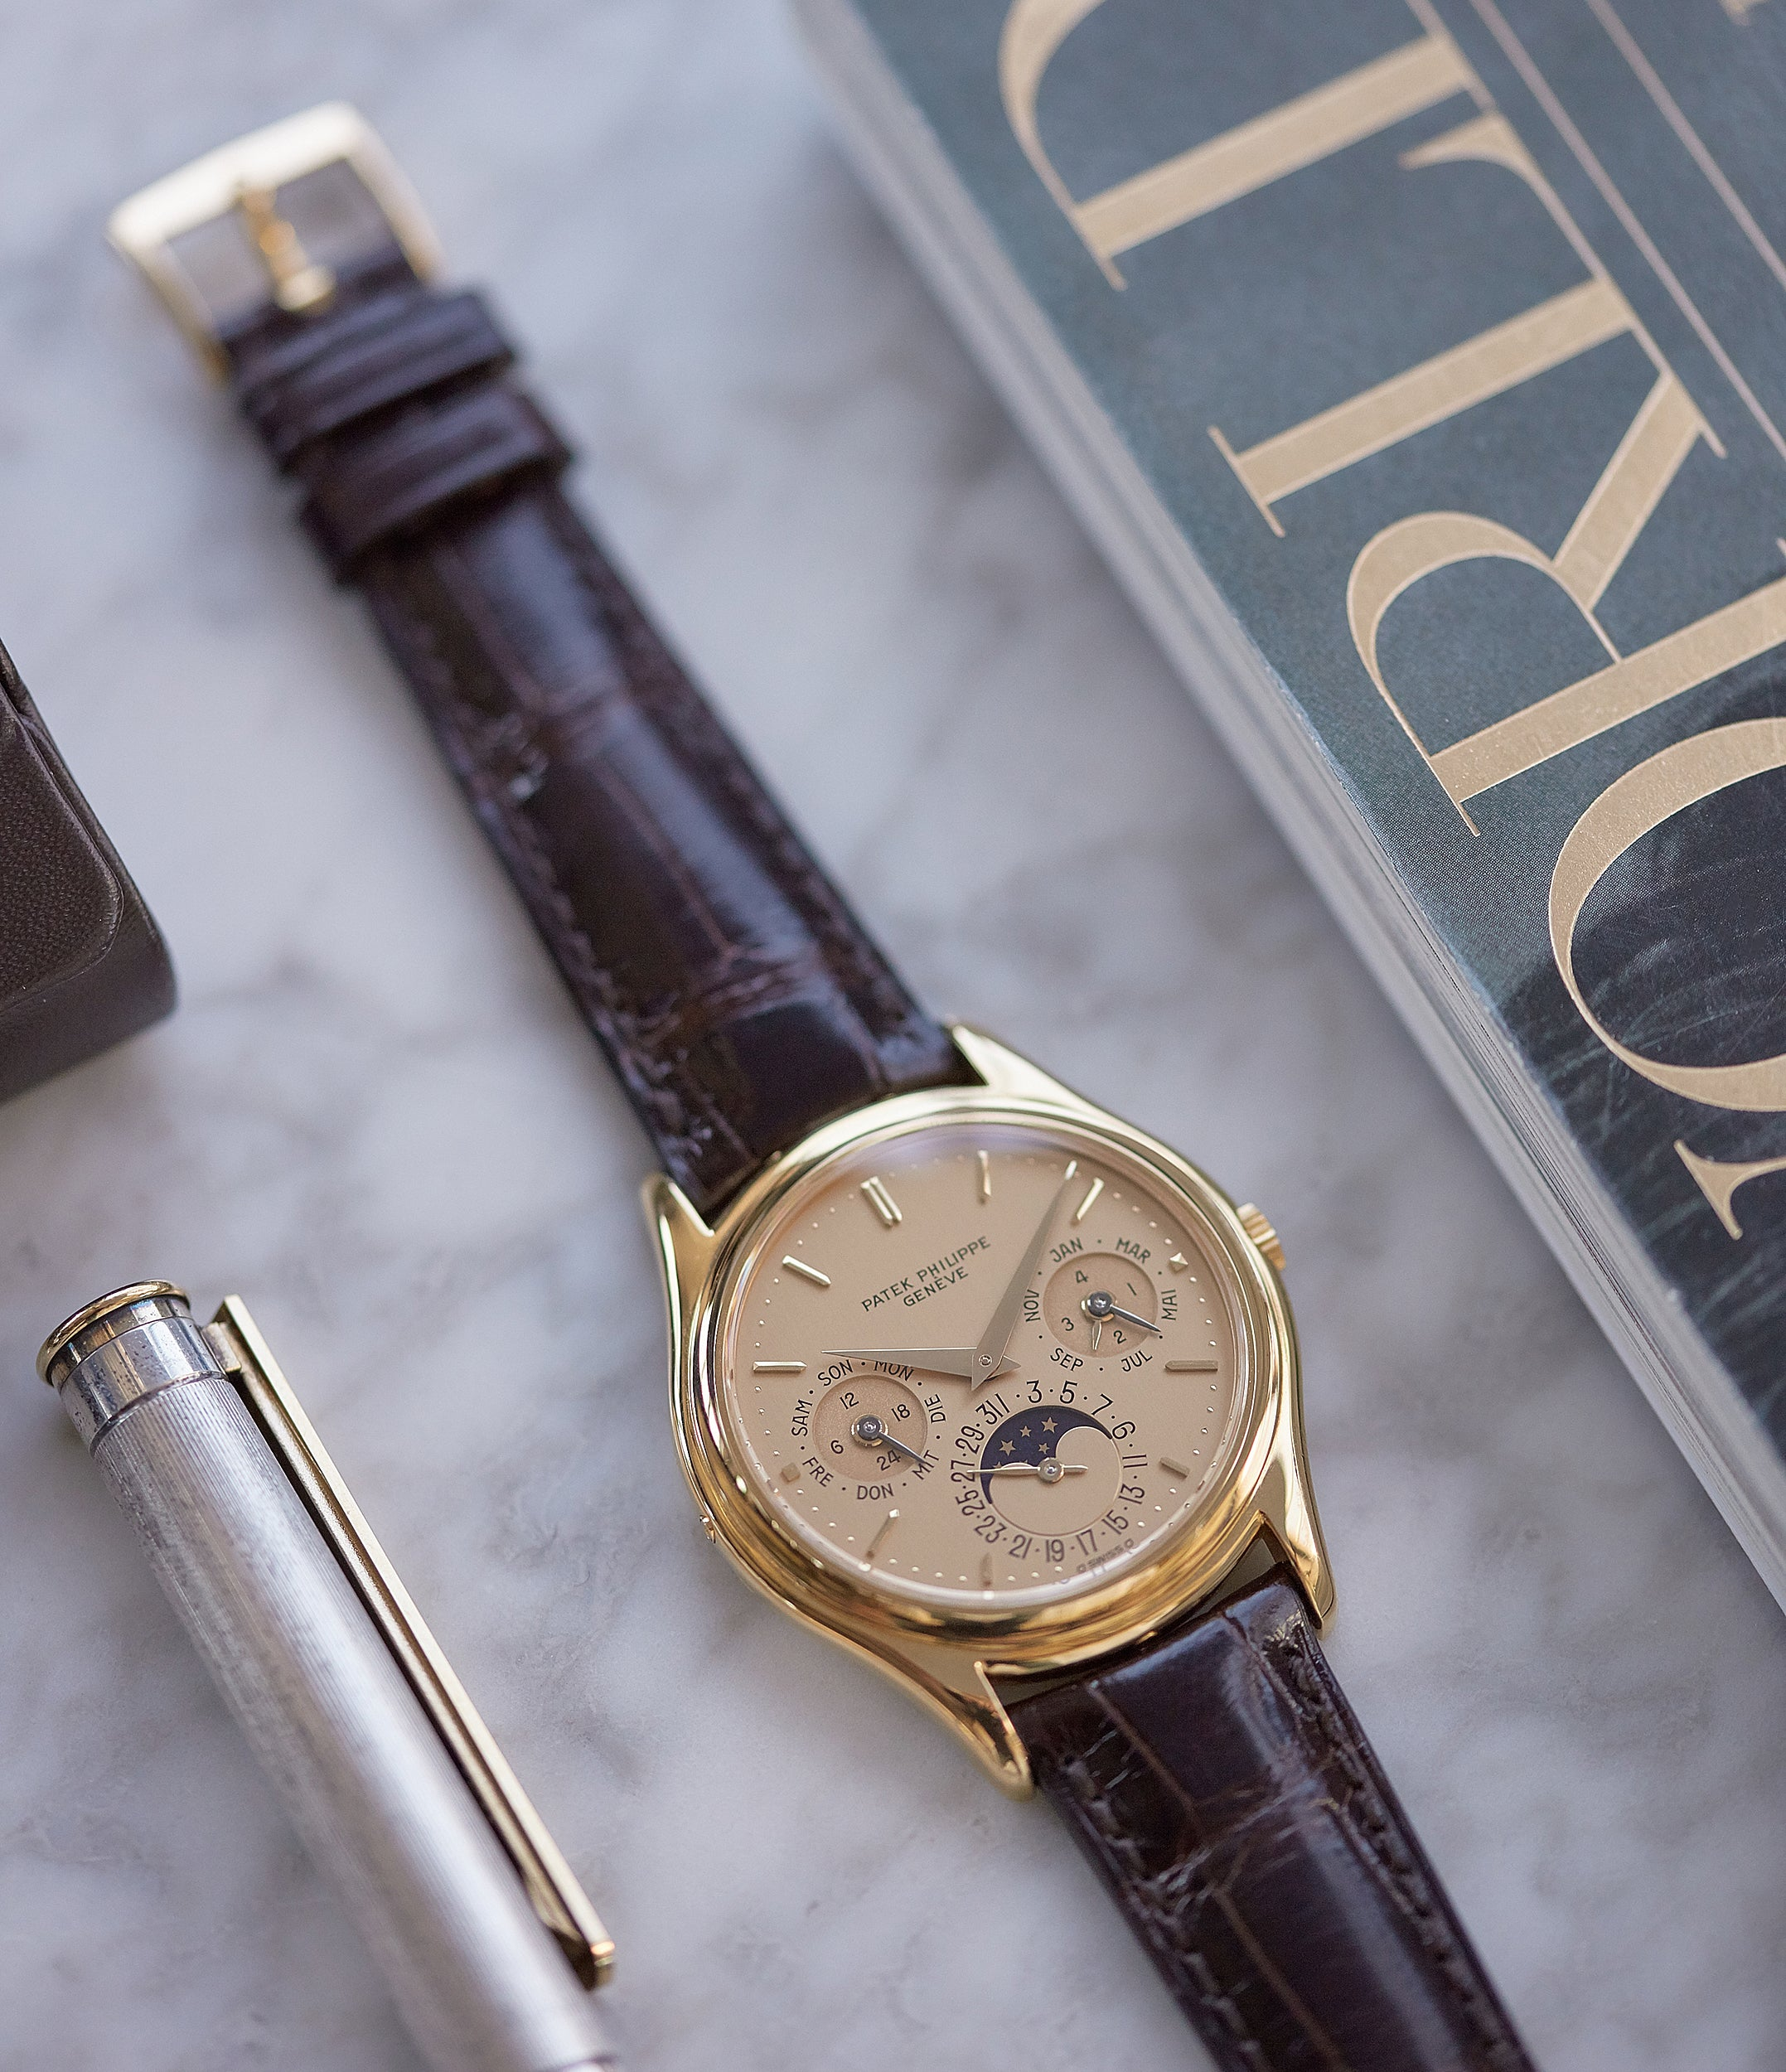 men's classic vintage Patek Philippe 3940J perpetual calendar full set dress watch for sale online at A Collected Man London UK specialist of rare watches